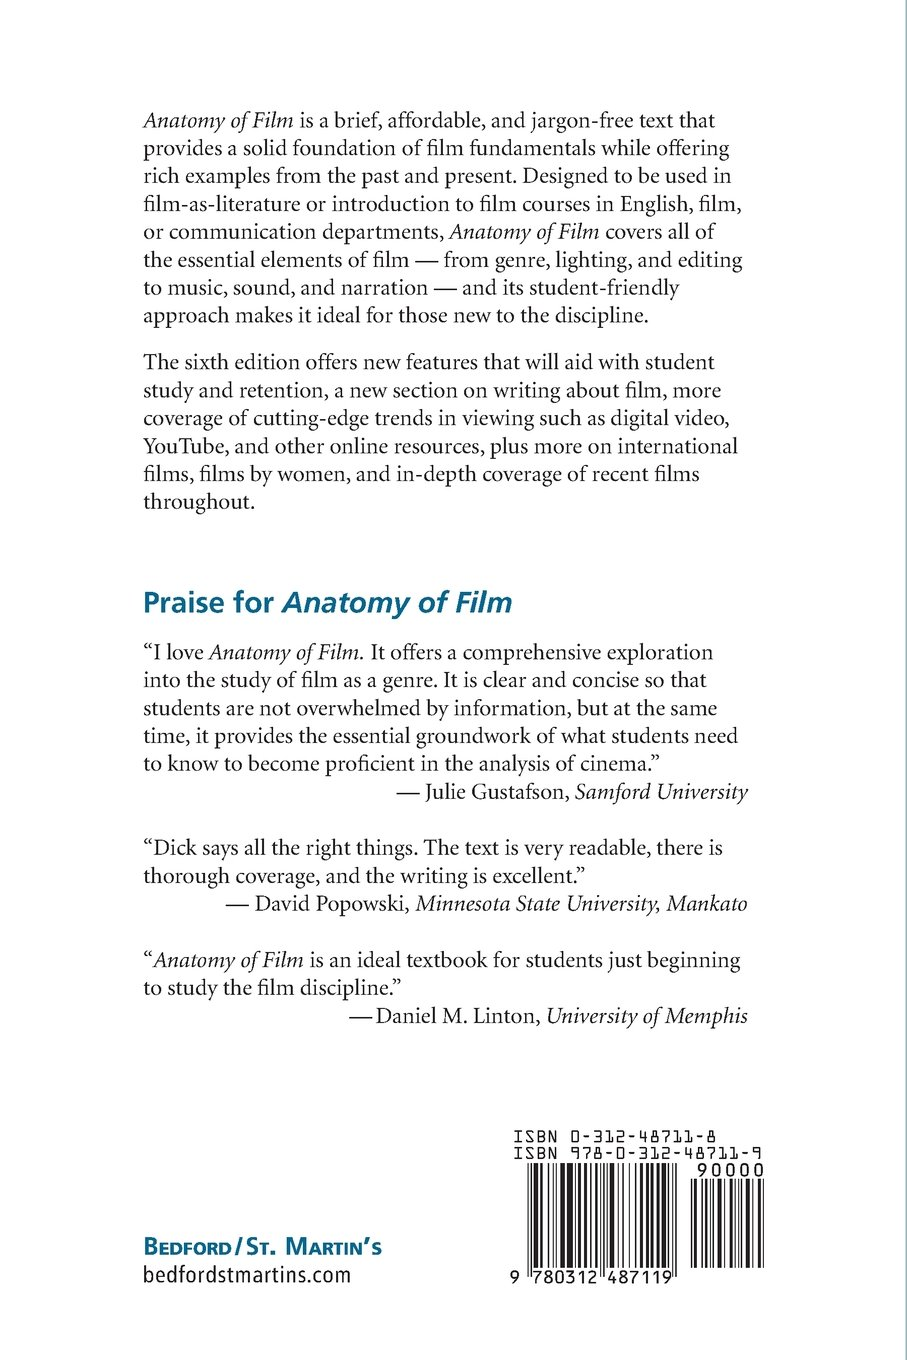 Buy Anatomy of Film, 6e Book Online at Low Prices in India | Anatomy ...